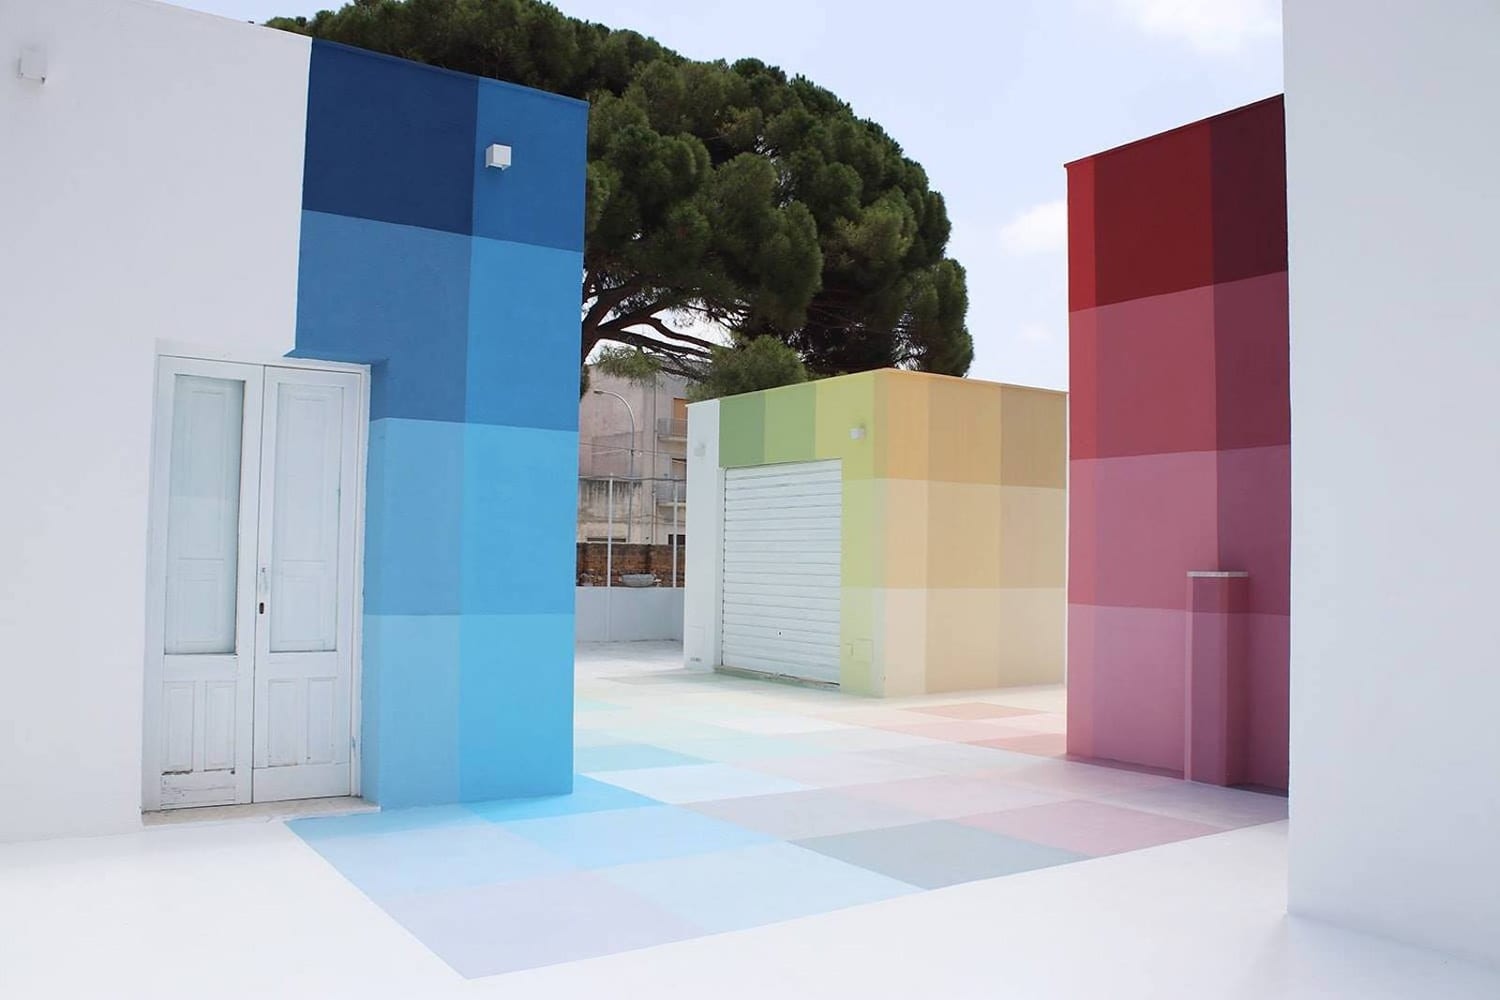 86+73 Chromatic Installation by Alberonero | Yellowtrace